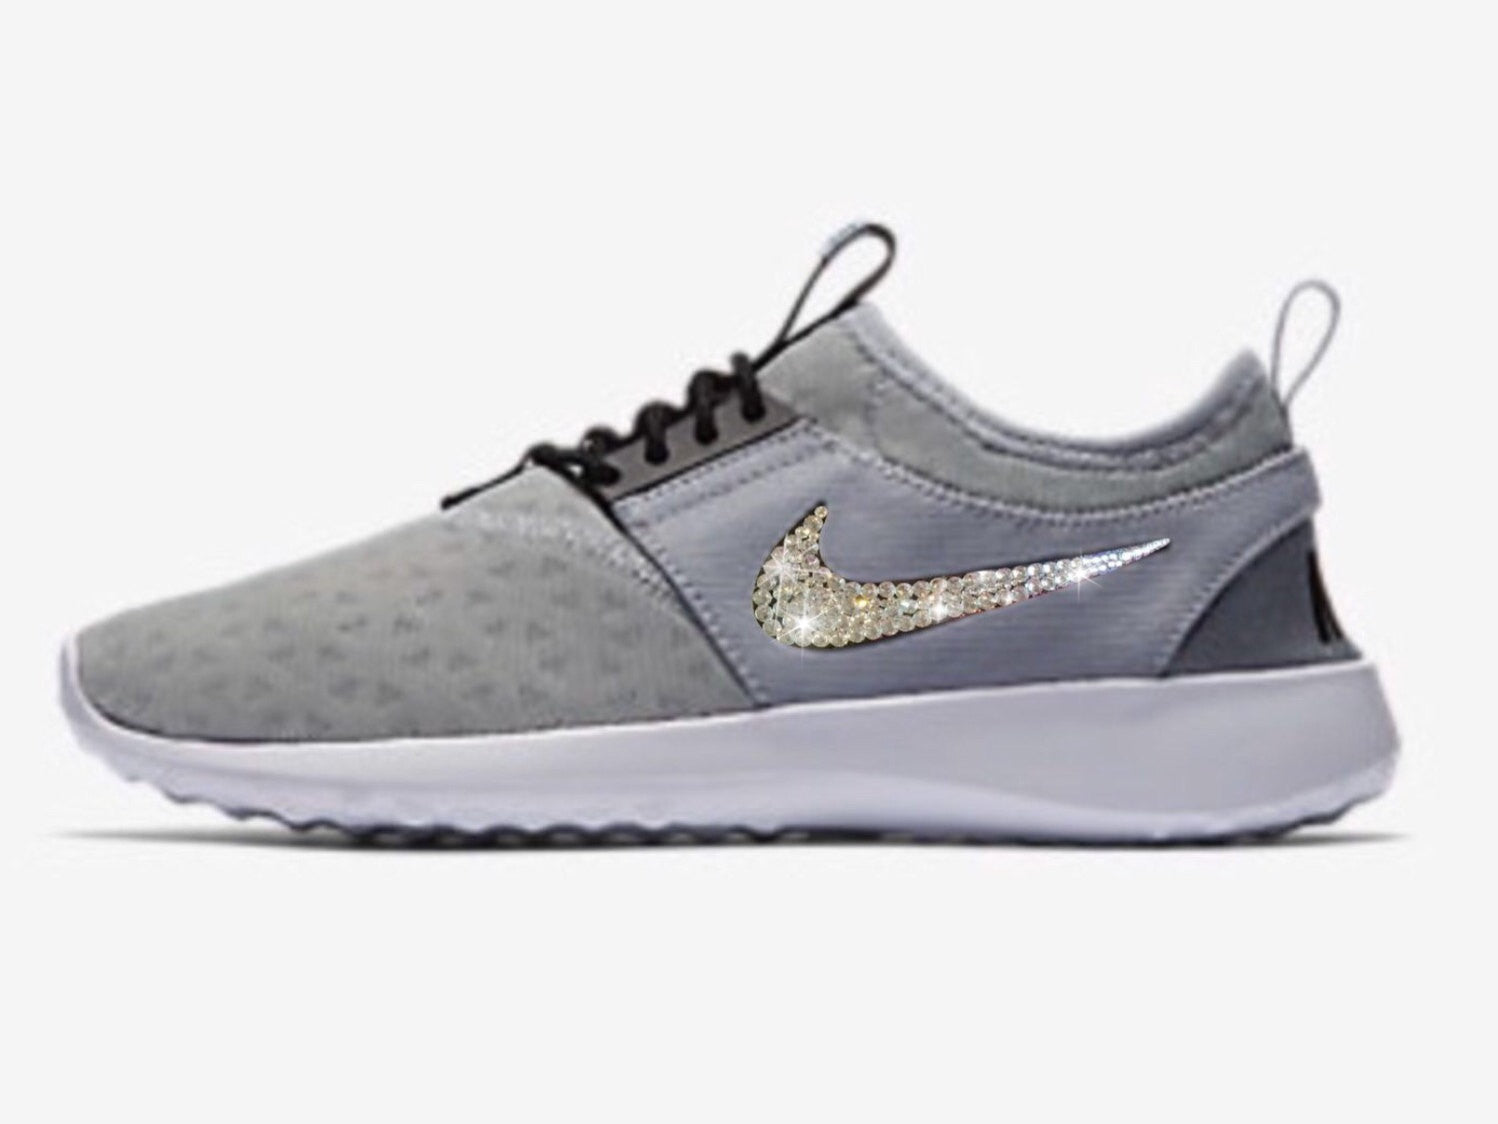 Bling Nike Juvenate Shoes w/ Swarovski Crystals GREY w/ ALL 4 Bedazzled Swooshes